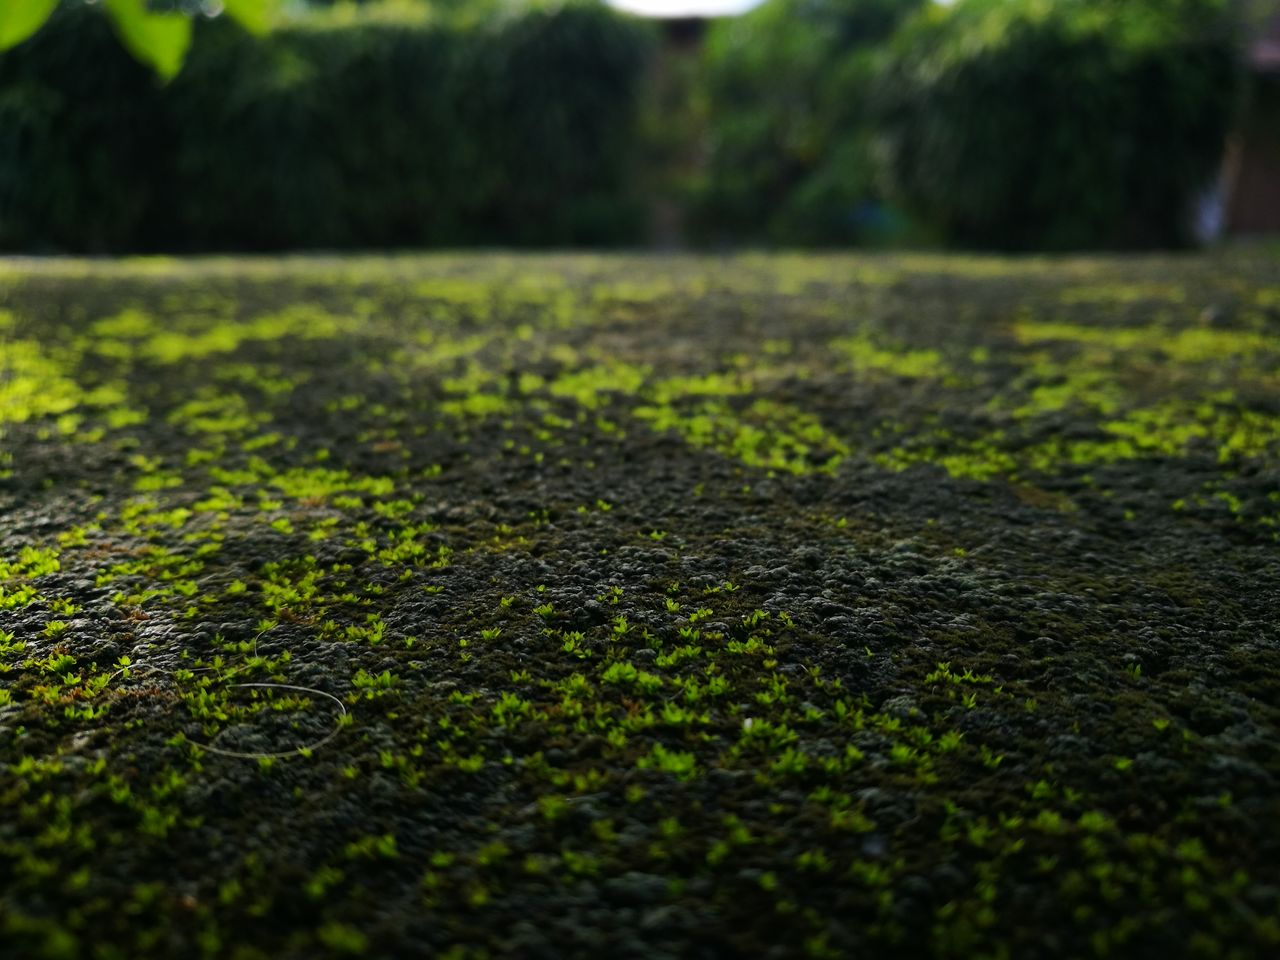 nature, surface level, no people, tranquility, growth, grass, green color, outdoors, day, beauty in nature, close-up, scenics, tree